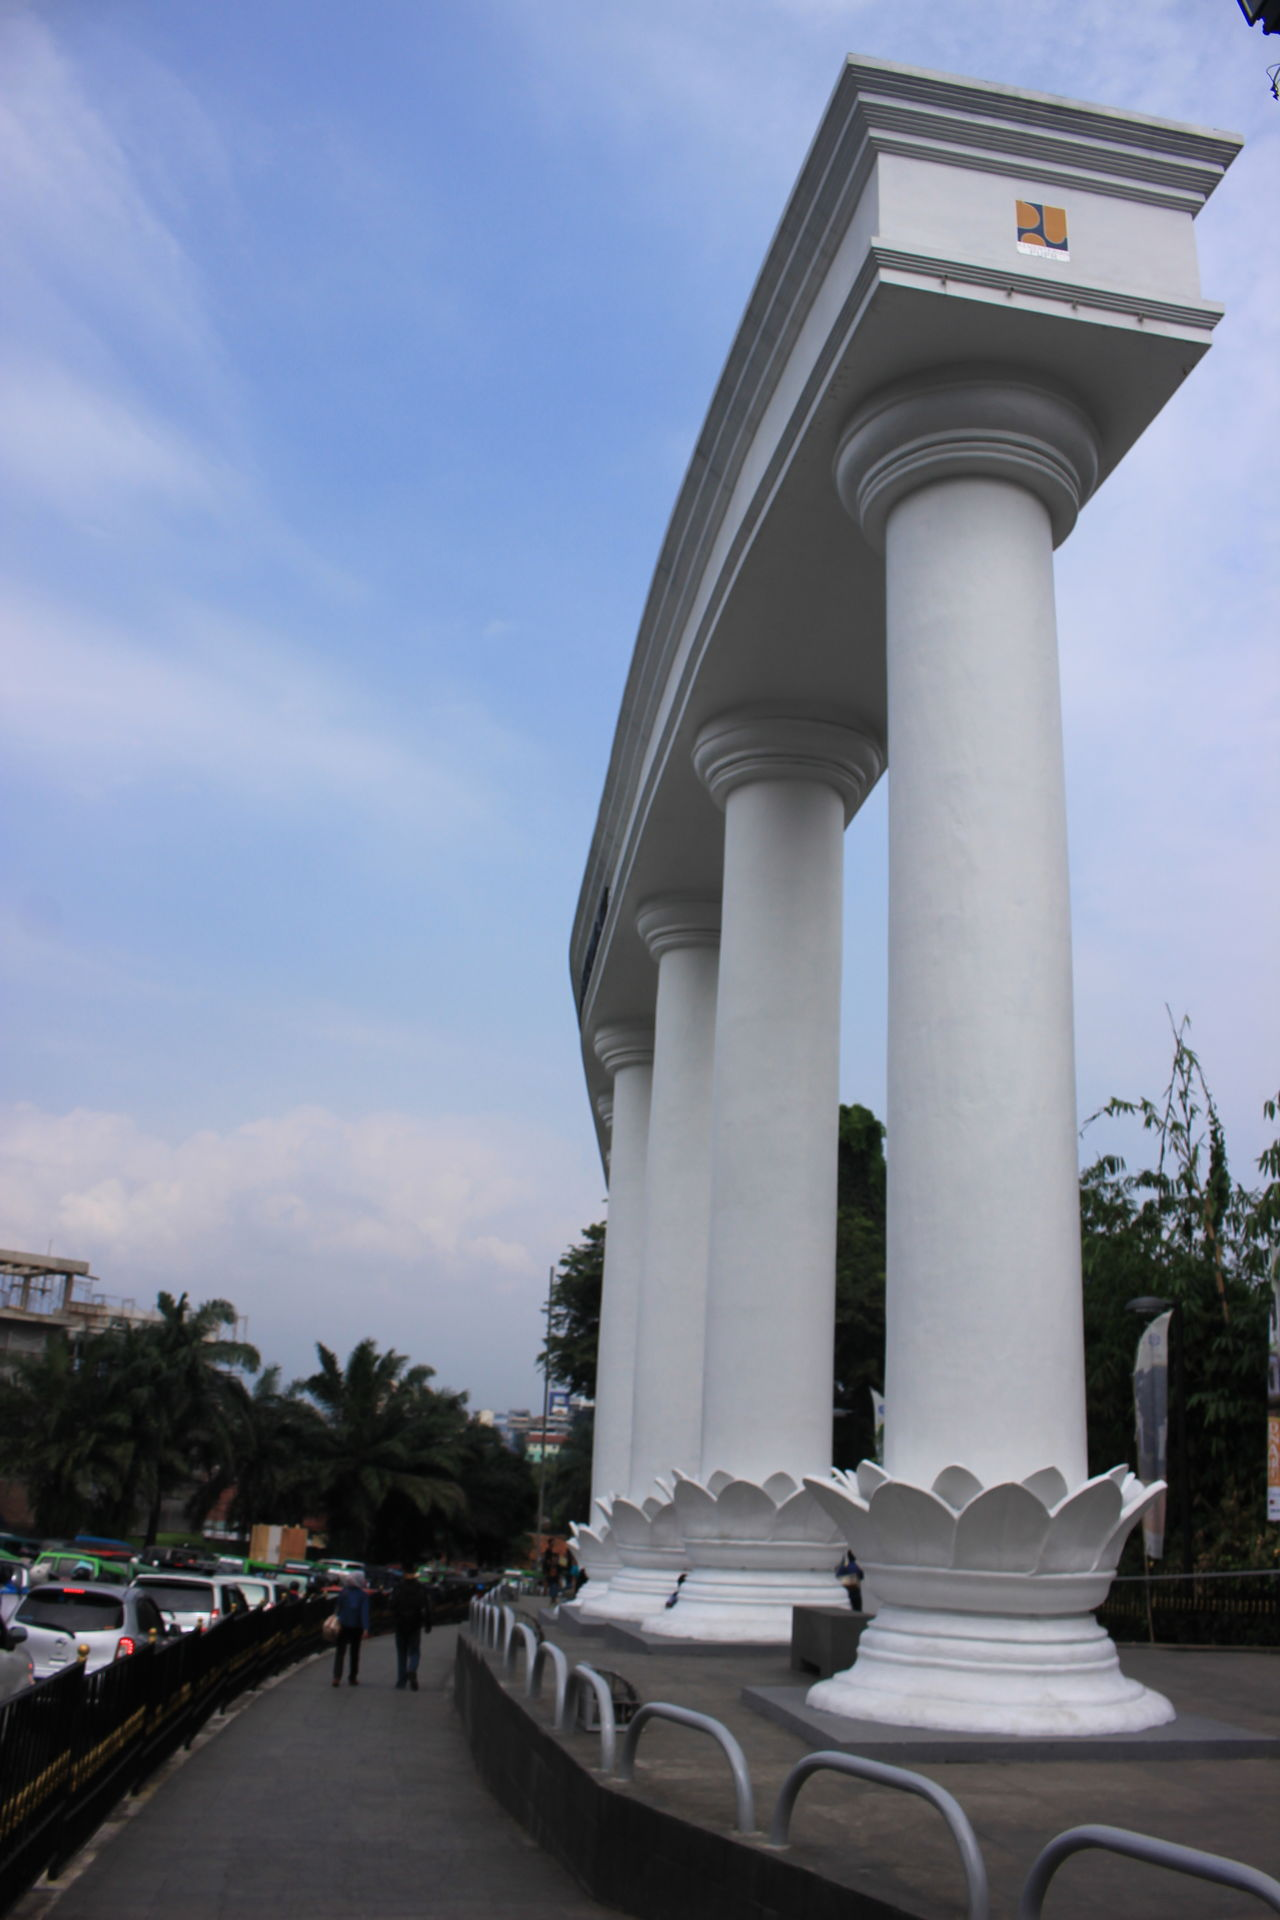 City gates bogor Architectural Column Architecture Built Structure Cloud - Sky Day Nature Outdoors Sky Streetphotography Tree